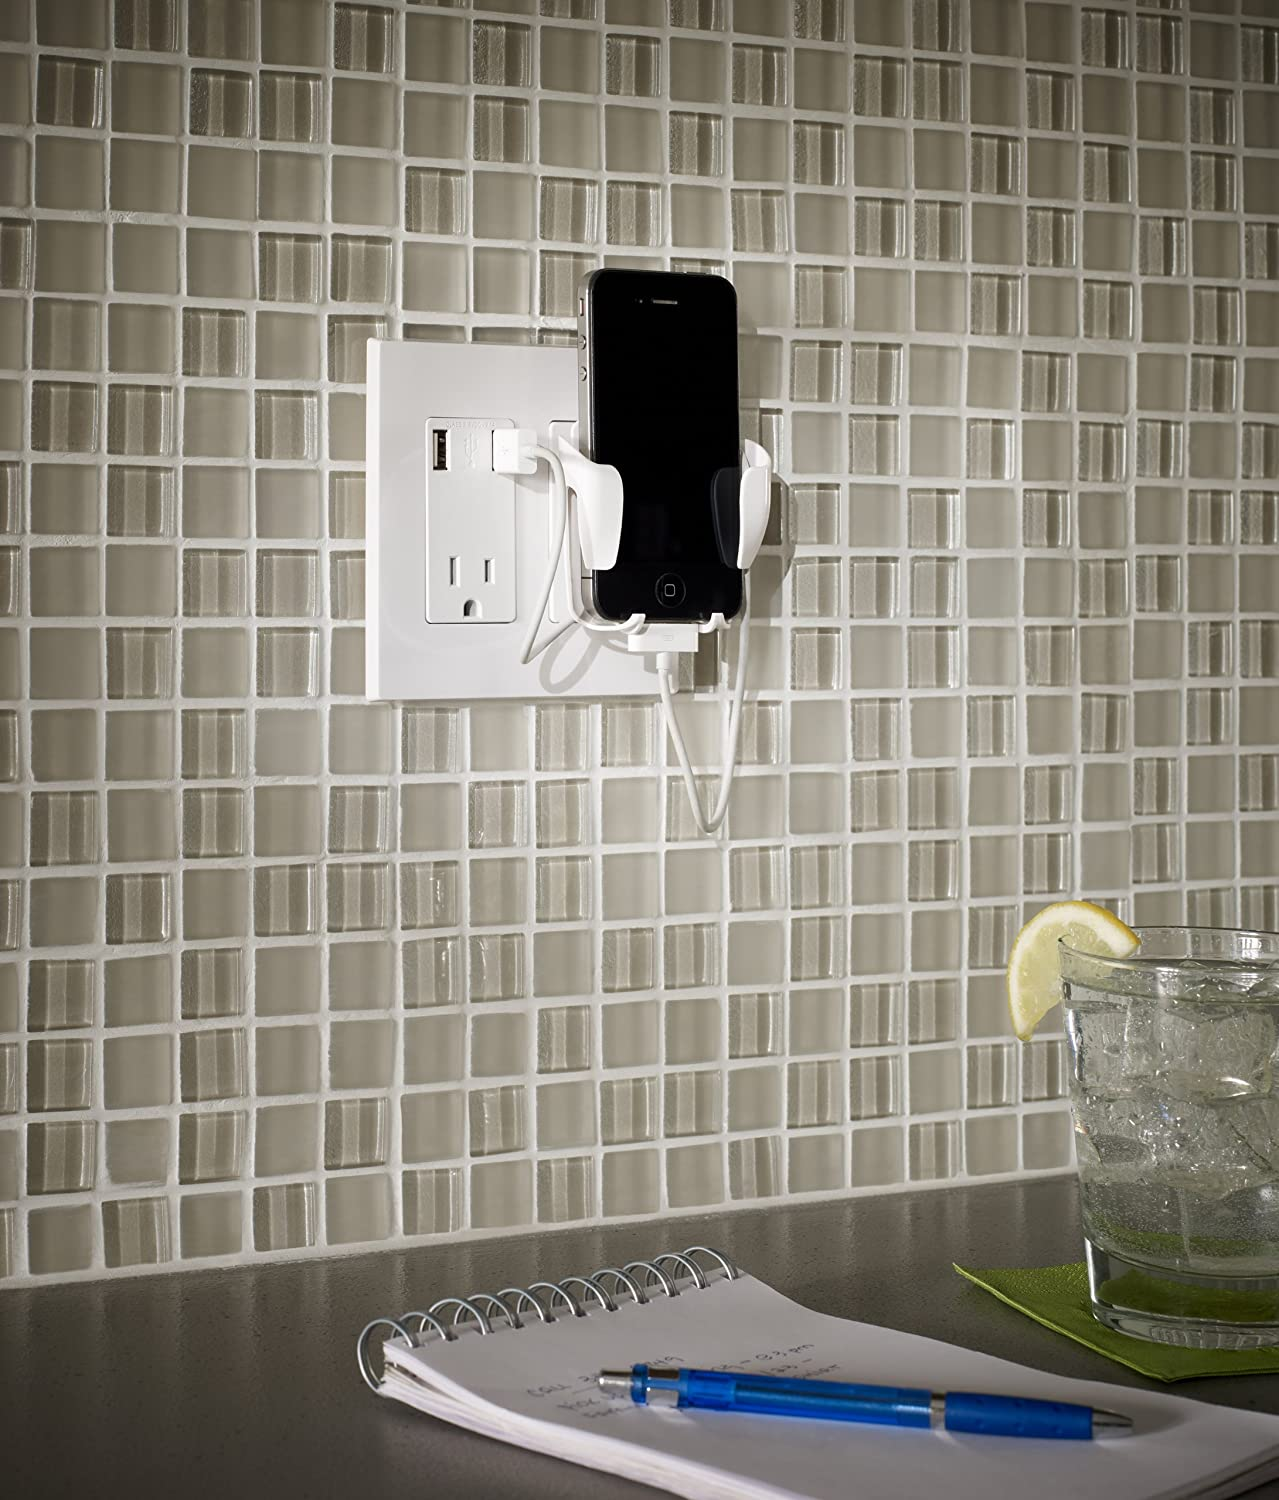 Leviton T5830 T High Speed Usb Charger Tamper Resistant Receptacle With Electrical Outlet Blacktr7740bkbox The Home Depot 20 Amp 125 Volt Light Almond Power Strips And Multi Outlets